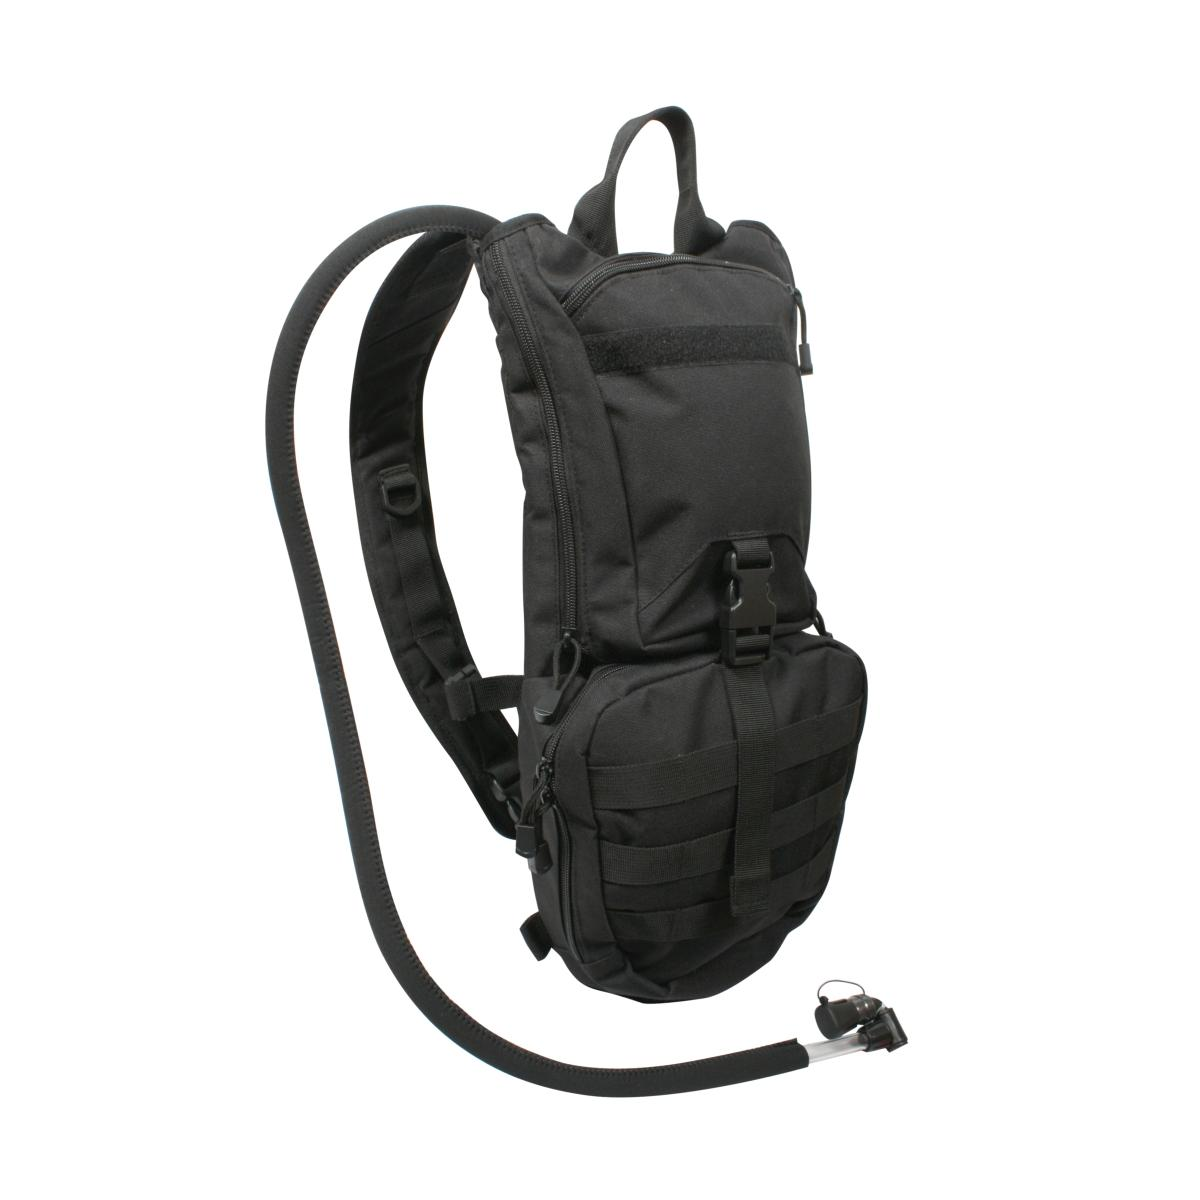 Rothco Rapid Trek MOLLE 3 Liter Hydration Packs by Rothco